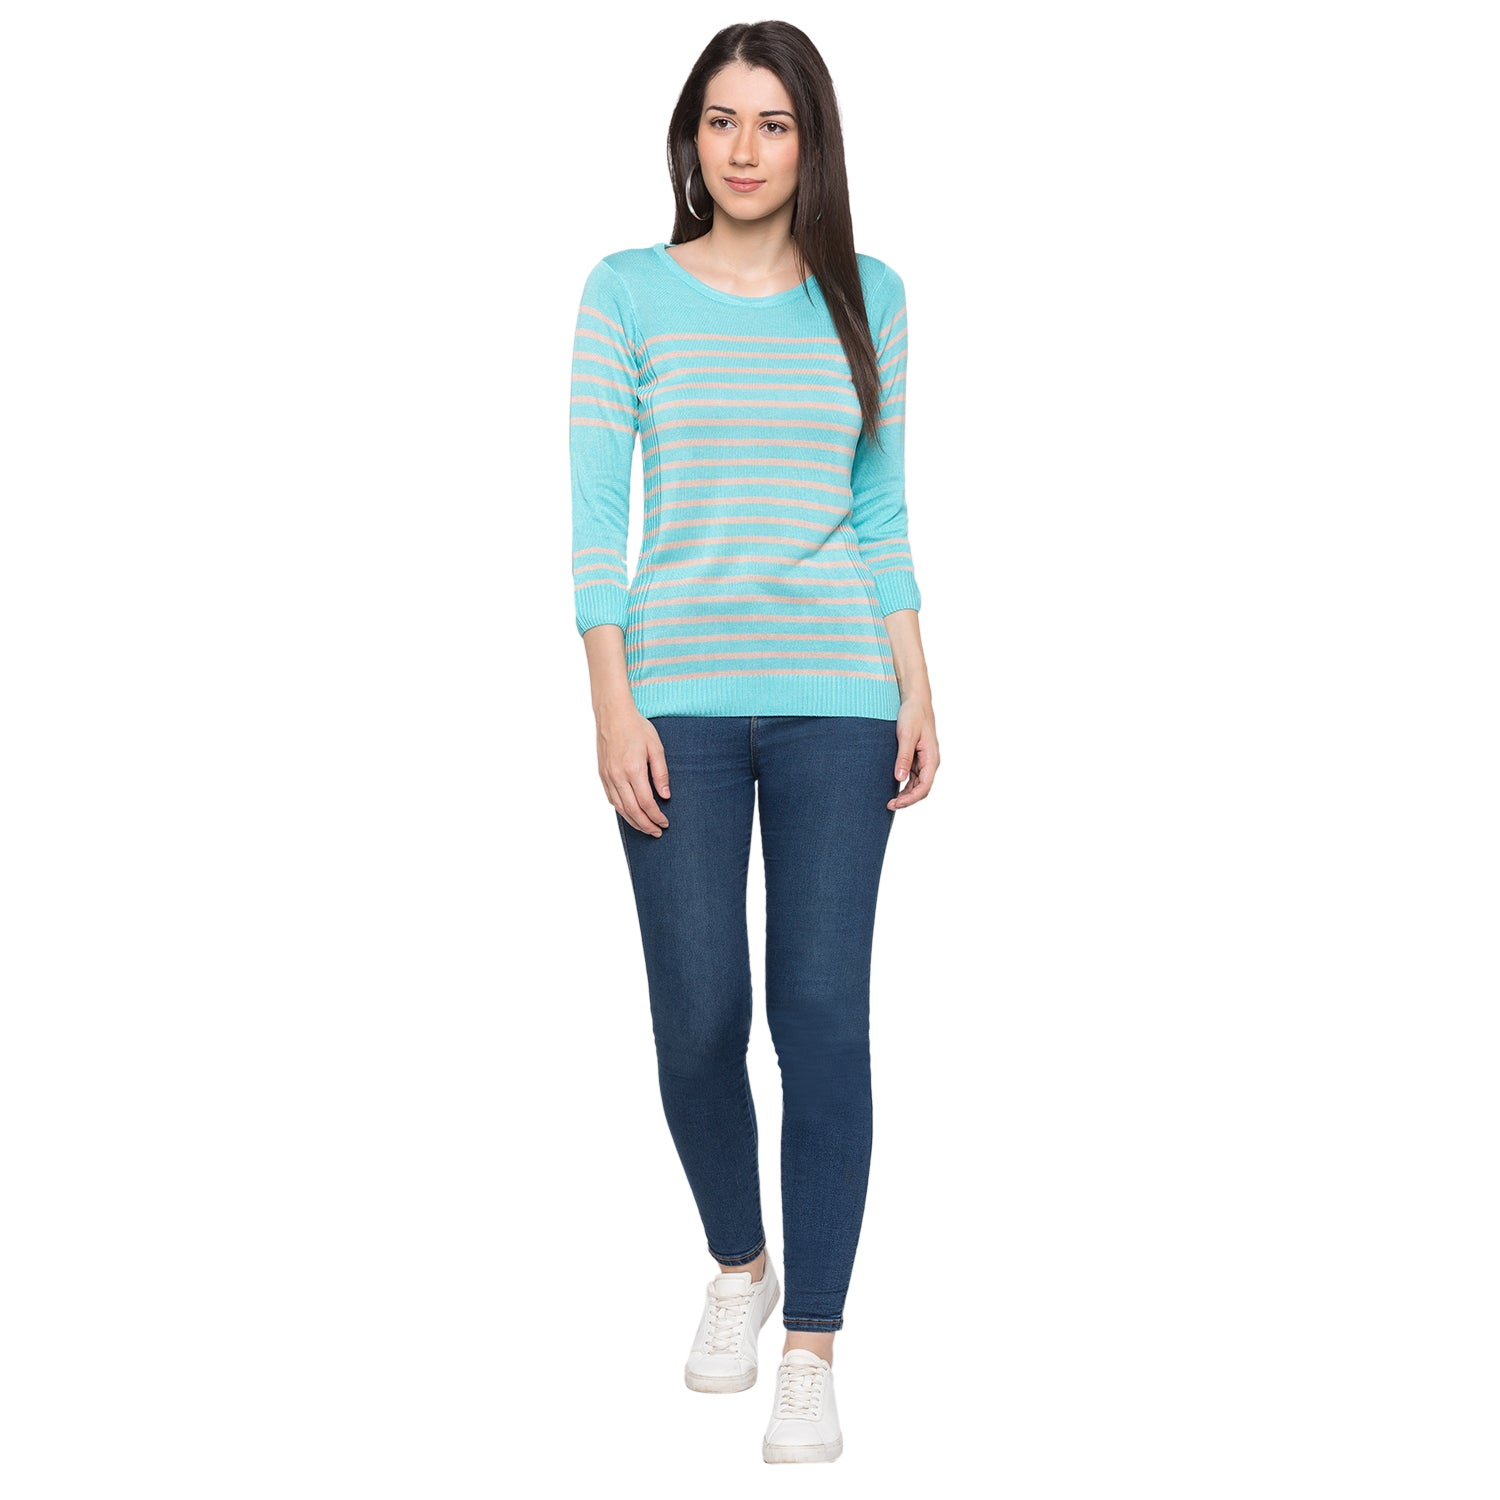 Globus Blue Striped Top4